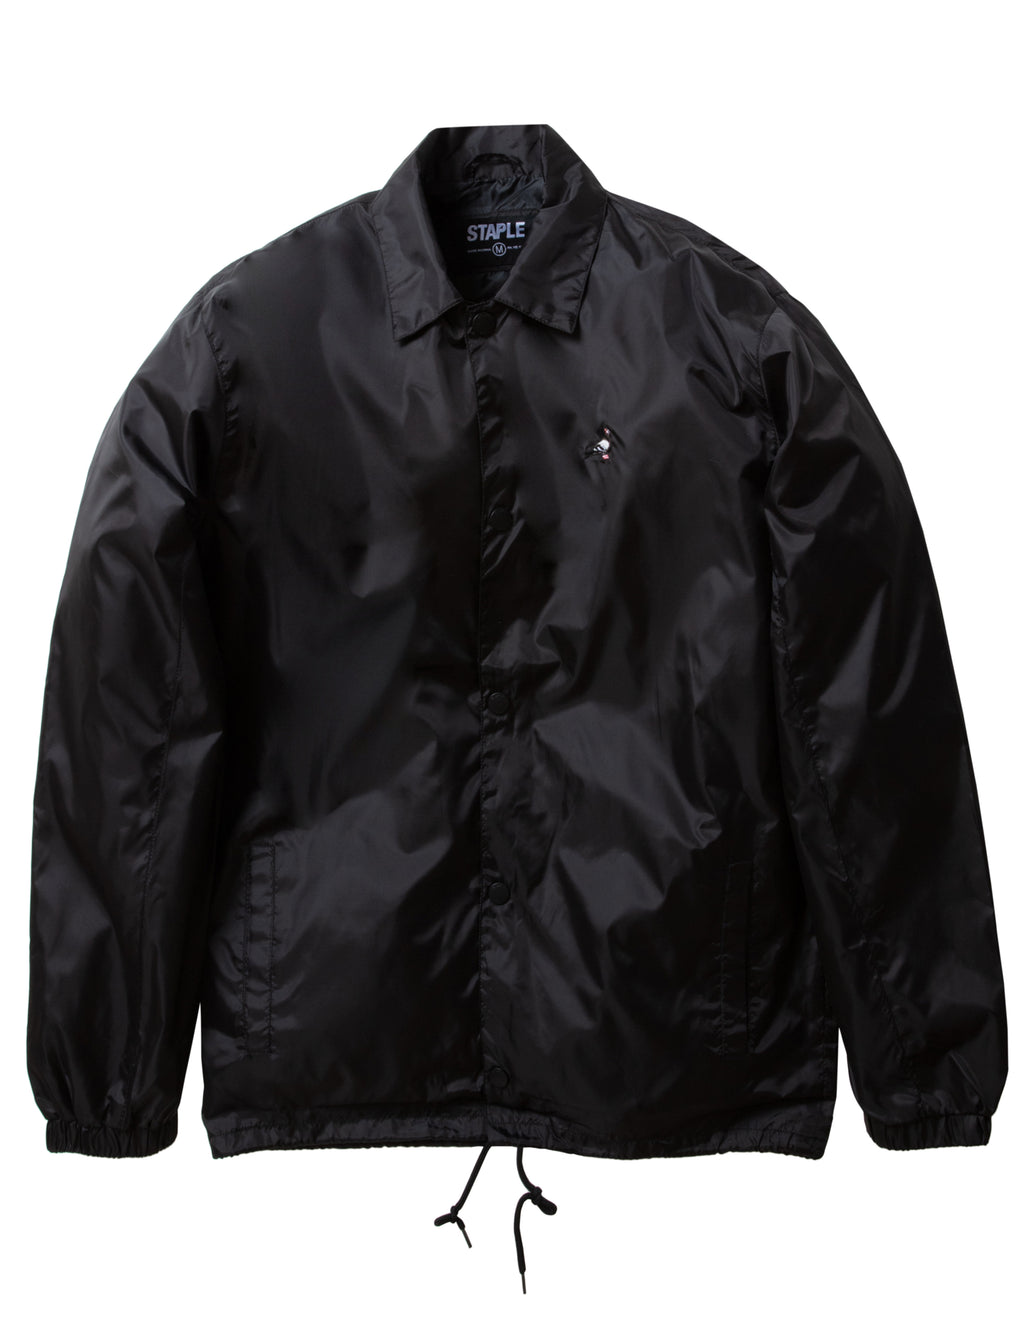 Solid Coach's Jacket - Jacket | Staple Pigeon